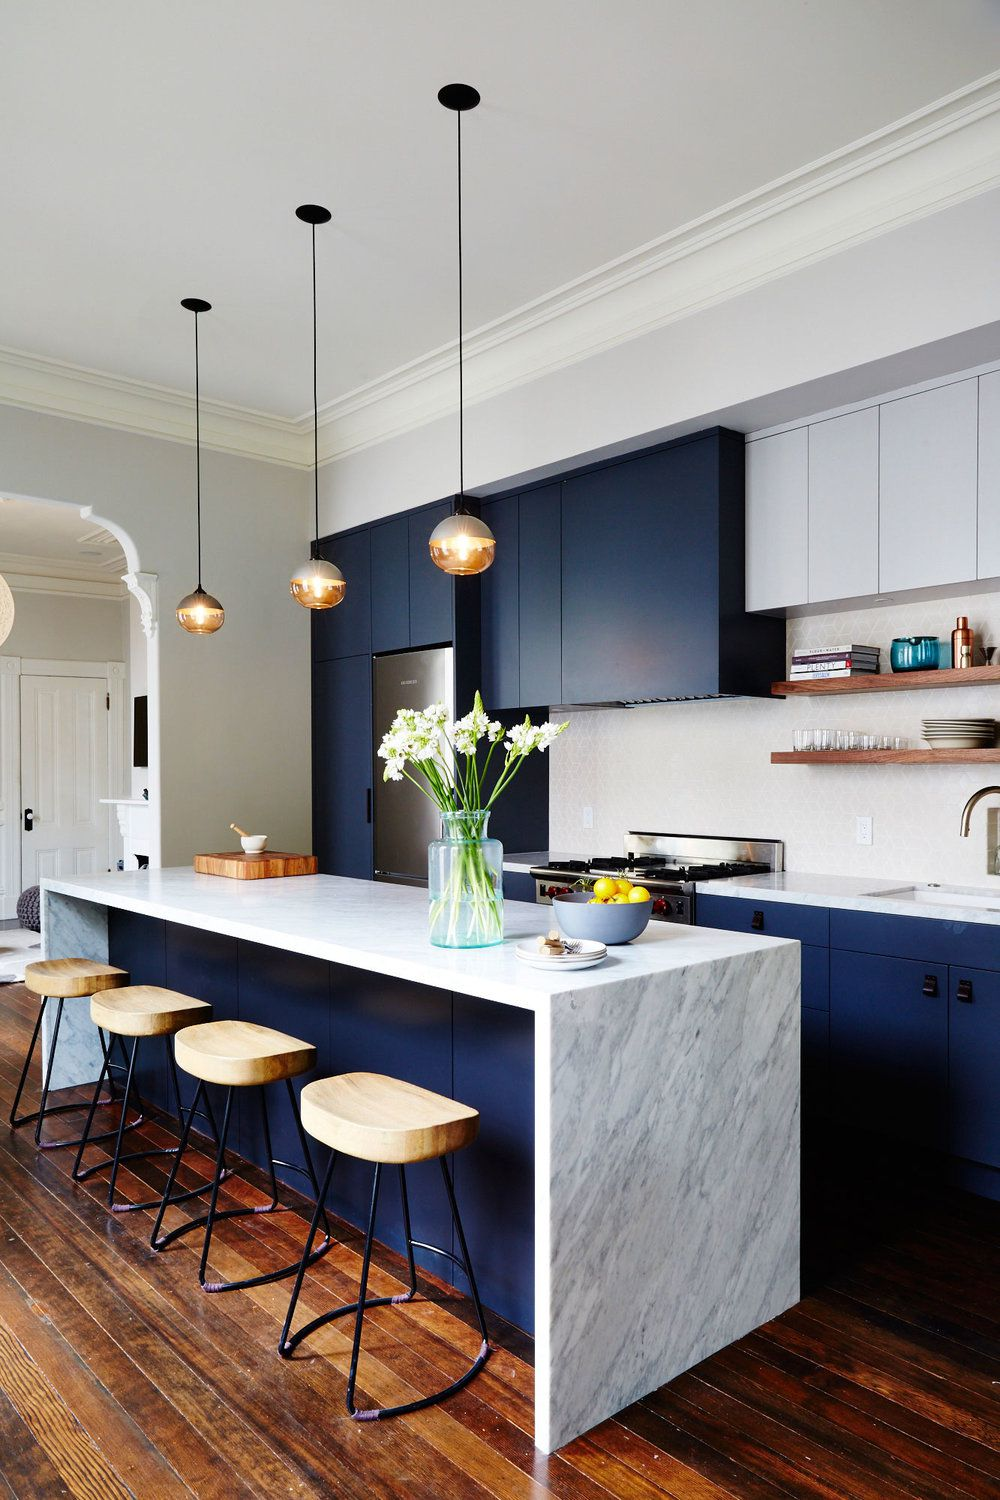 Fabulous Design Your Kitchen With Unique Kitchen Color Ideas Home Interior And Landscaping Thycampuscom